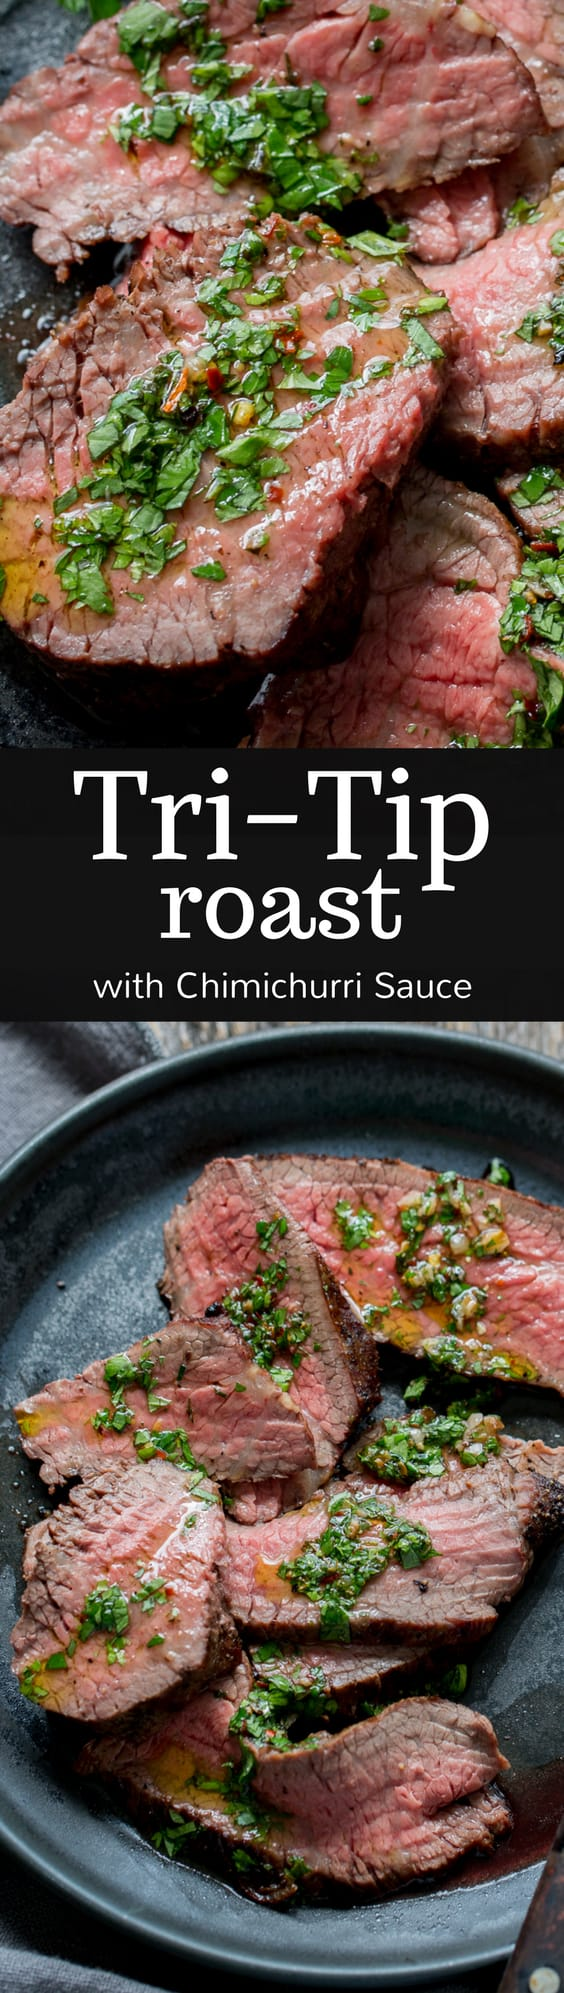 Tri-Tip Roast with Chimichurri Sauce - Chimichurri is a delicious, bright and bold green sauce often used as a condiment for grilled meat like the Tri-Tip roast.  www.savingdessert.com